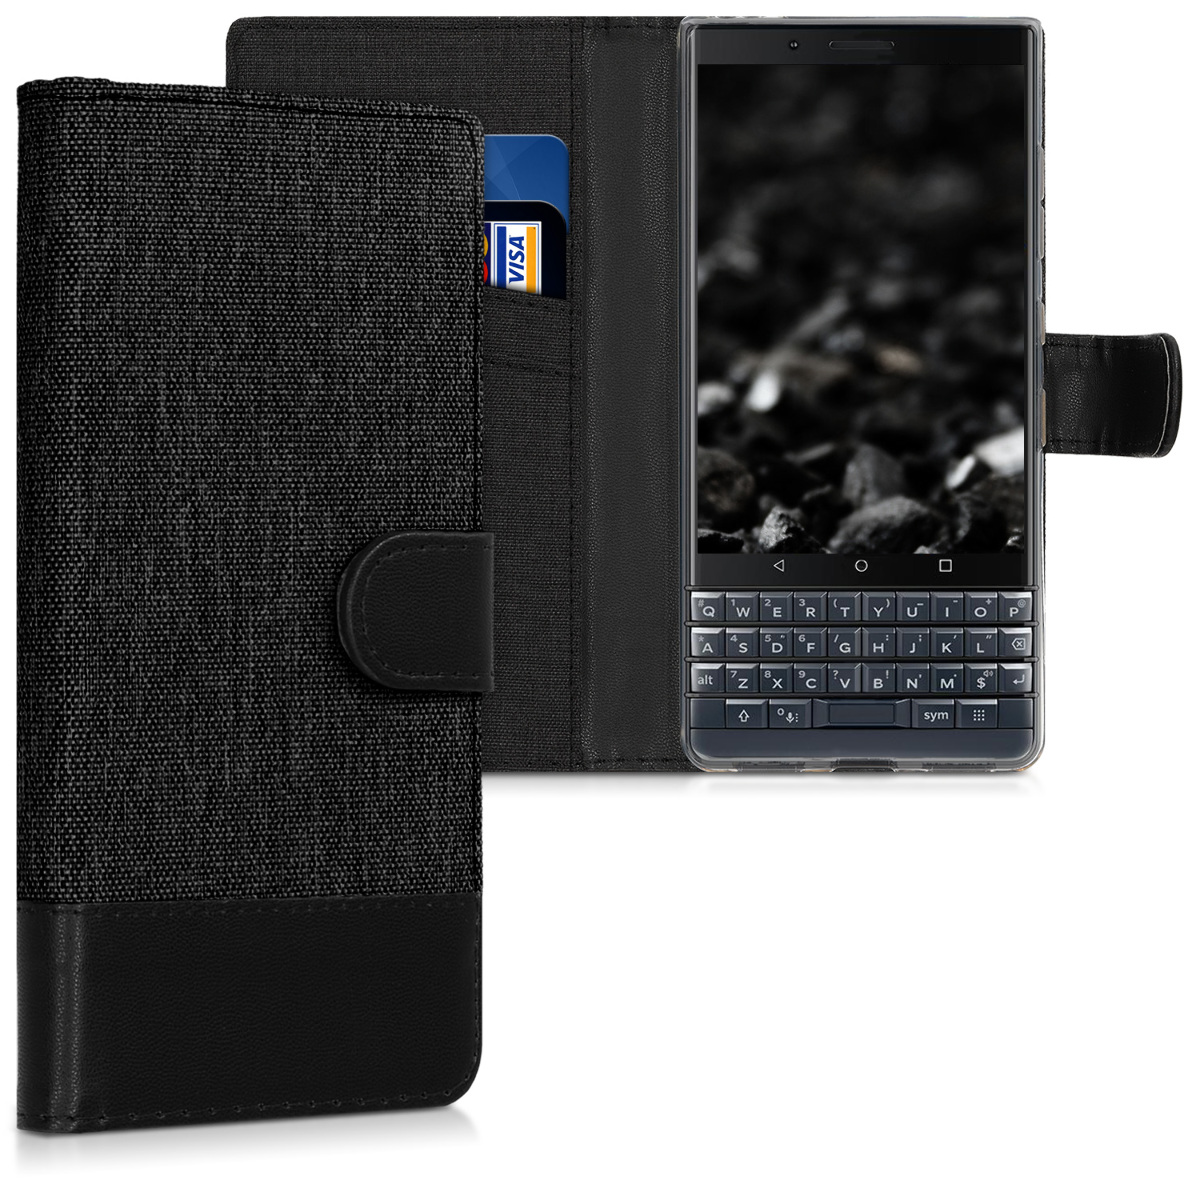 KW Θήκη - Πορτοφόλι Blackberry KEY2 LE (Lite) - Anthracite / Black (46277.73)